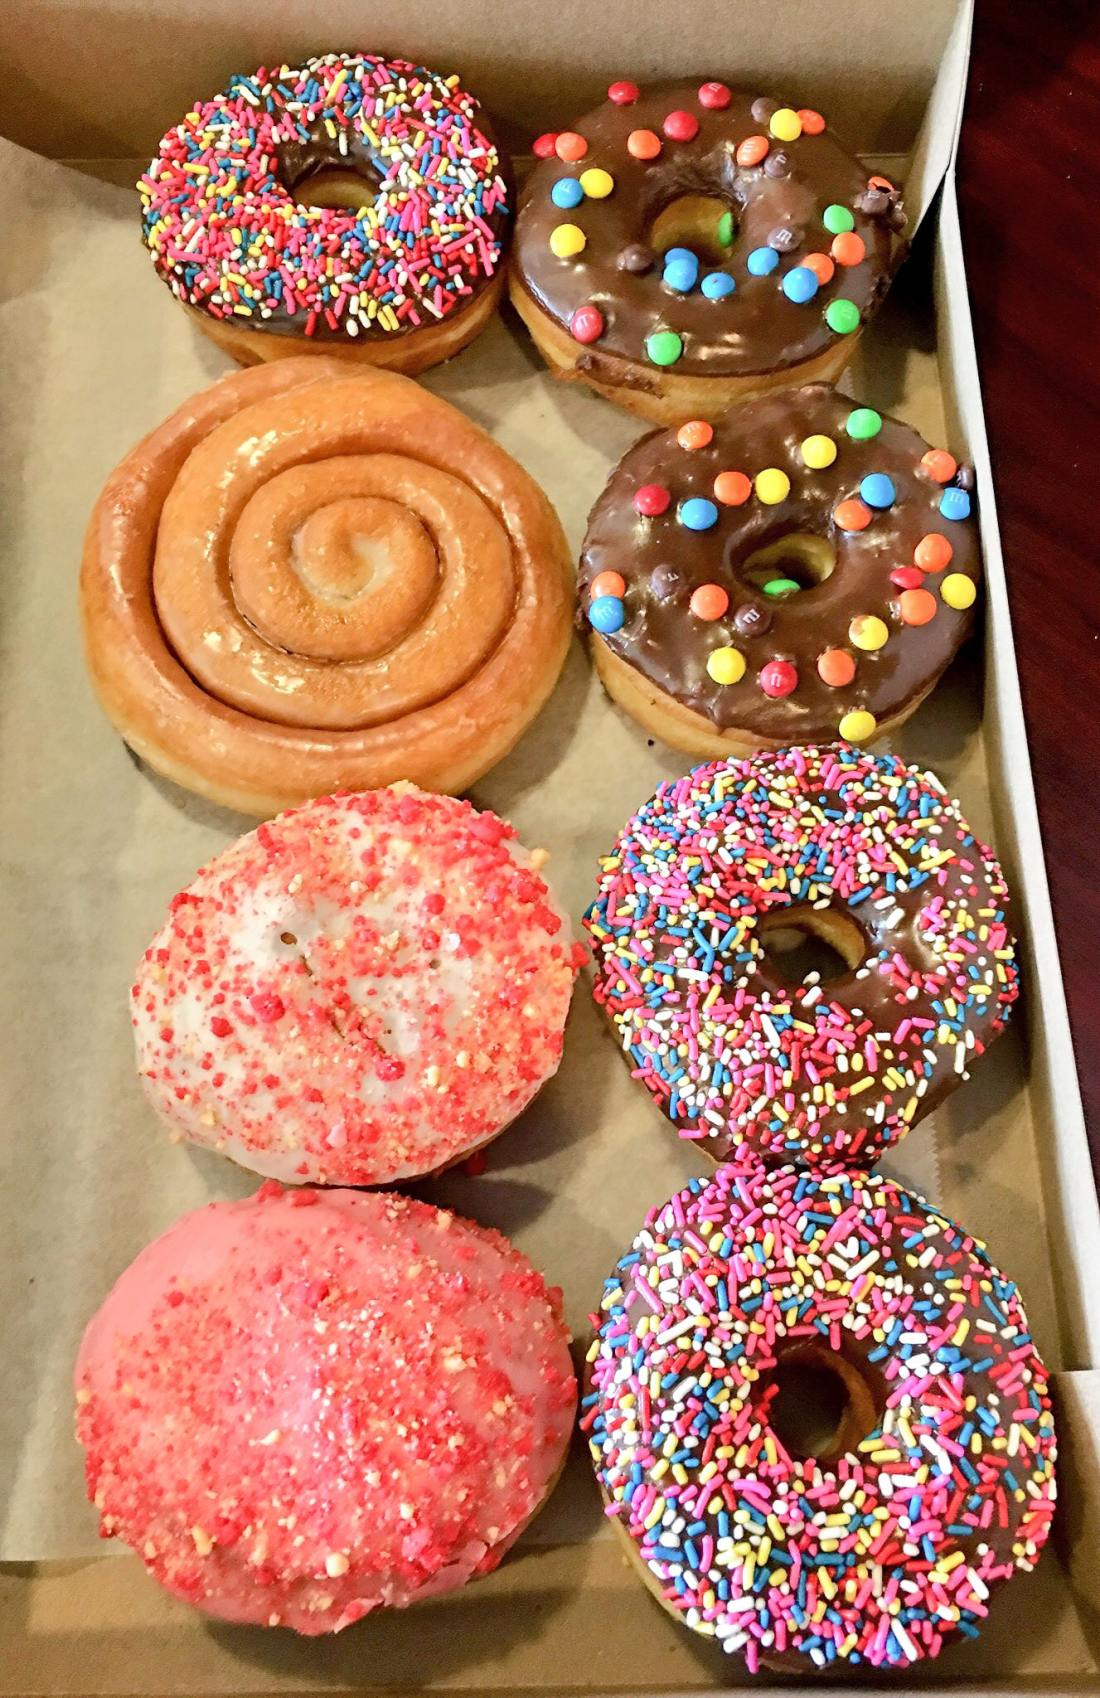 OMG Donuts and Bakery Assorted Donuts. OMG Donuts and Bakery Travel Review via - JaysSweetNSourLife.com